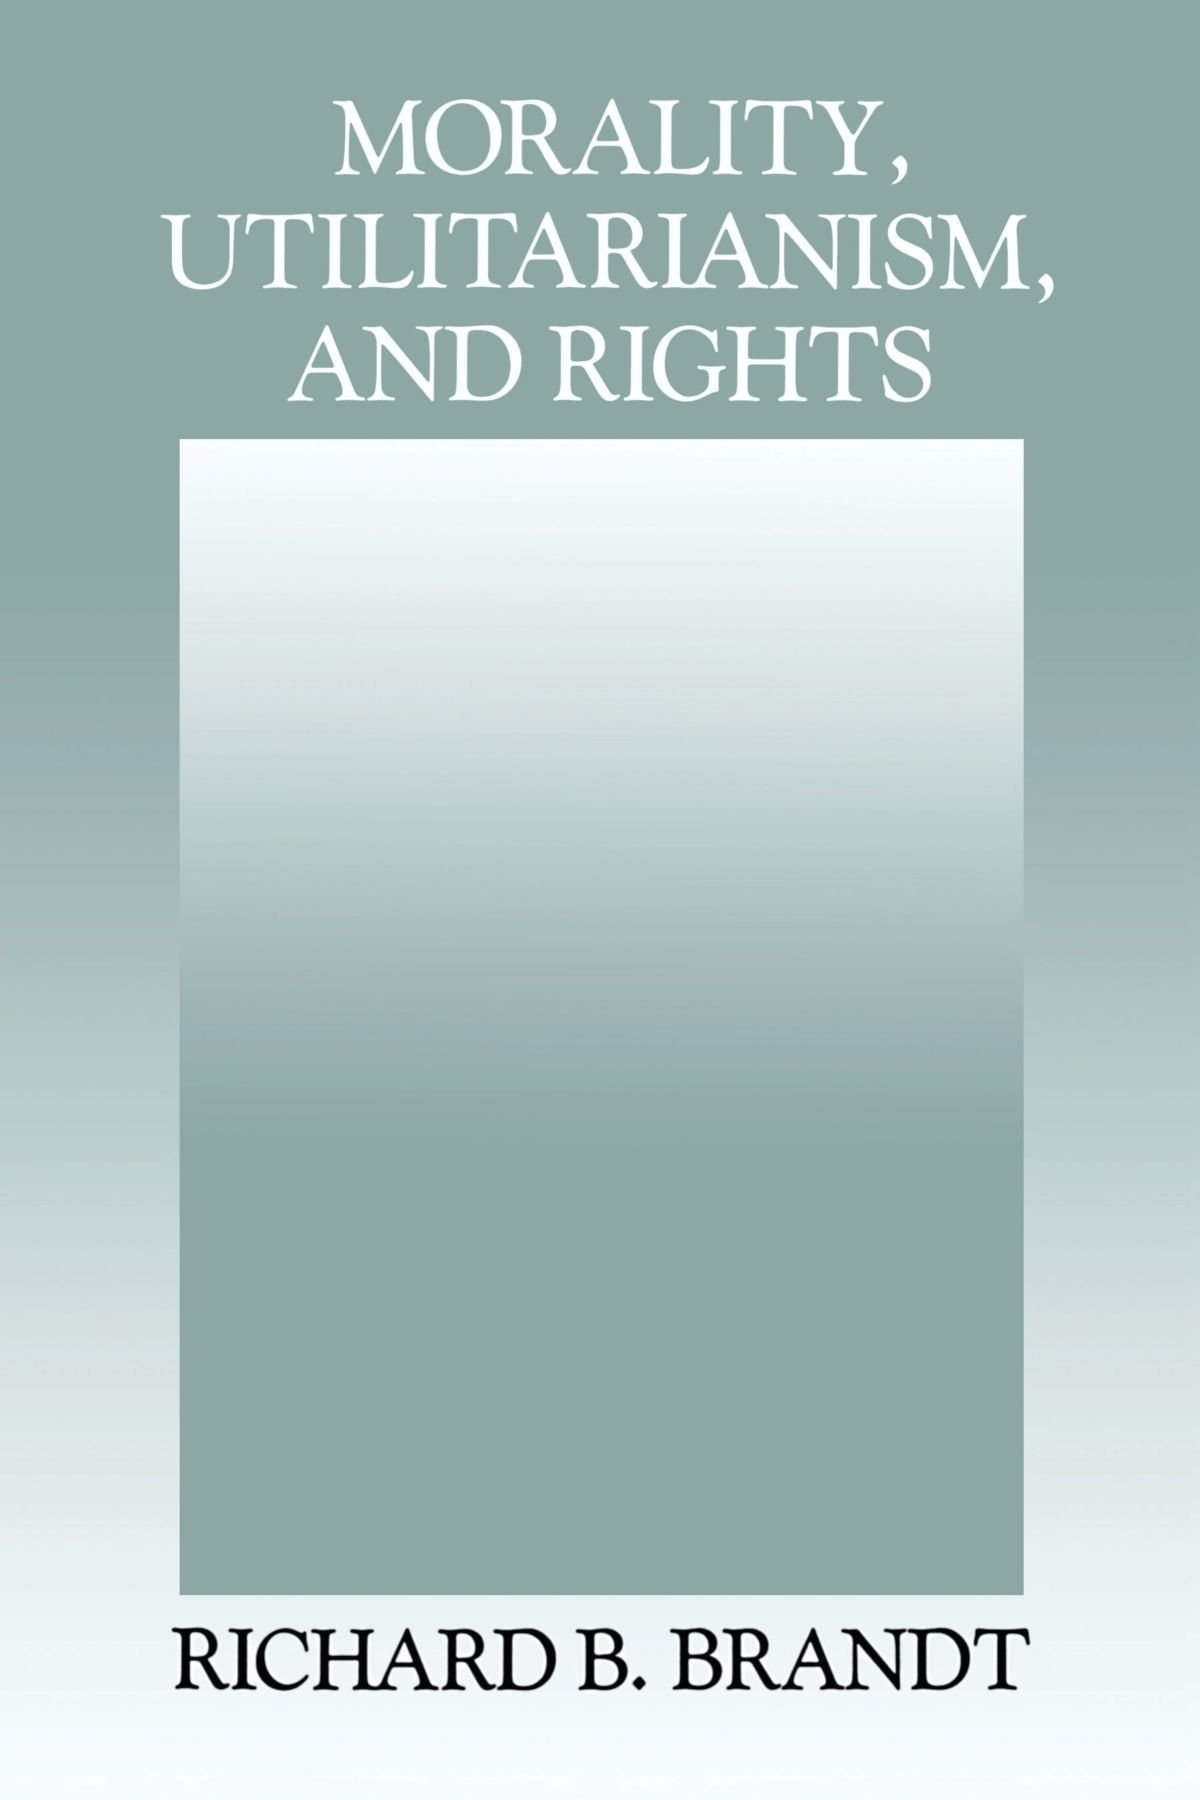 morality utilitarianism and rights richard b brandt morality utilitarianism and rights richard b brandt 9780521425278 com books